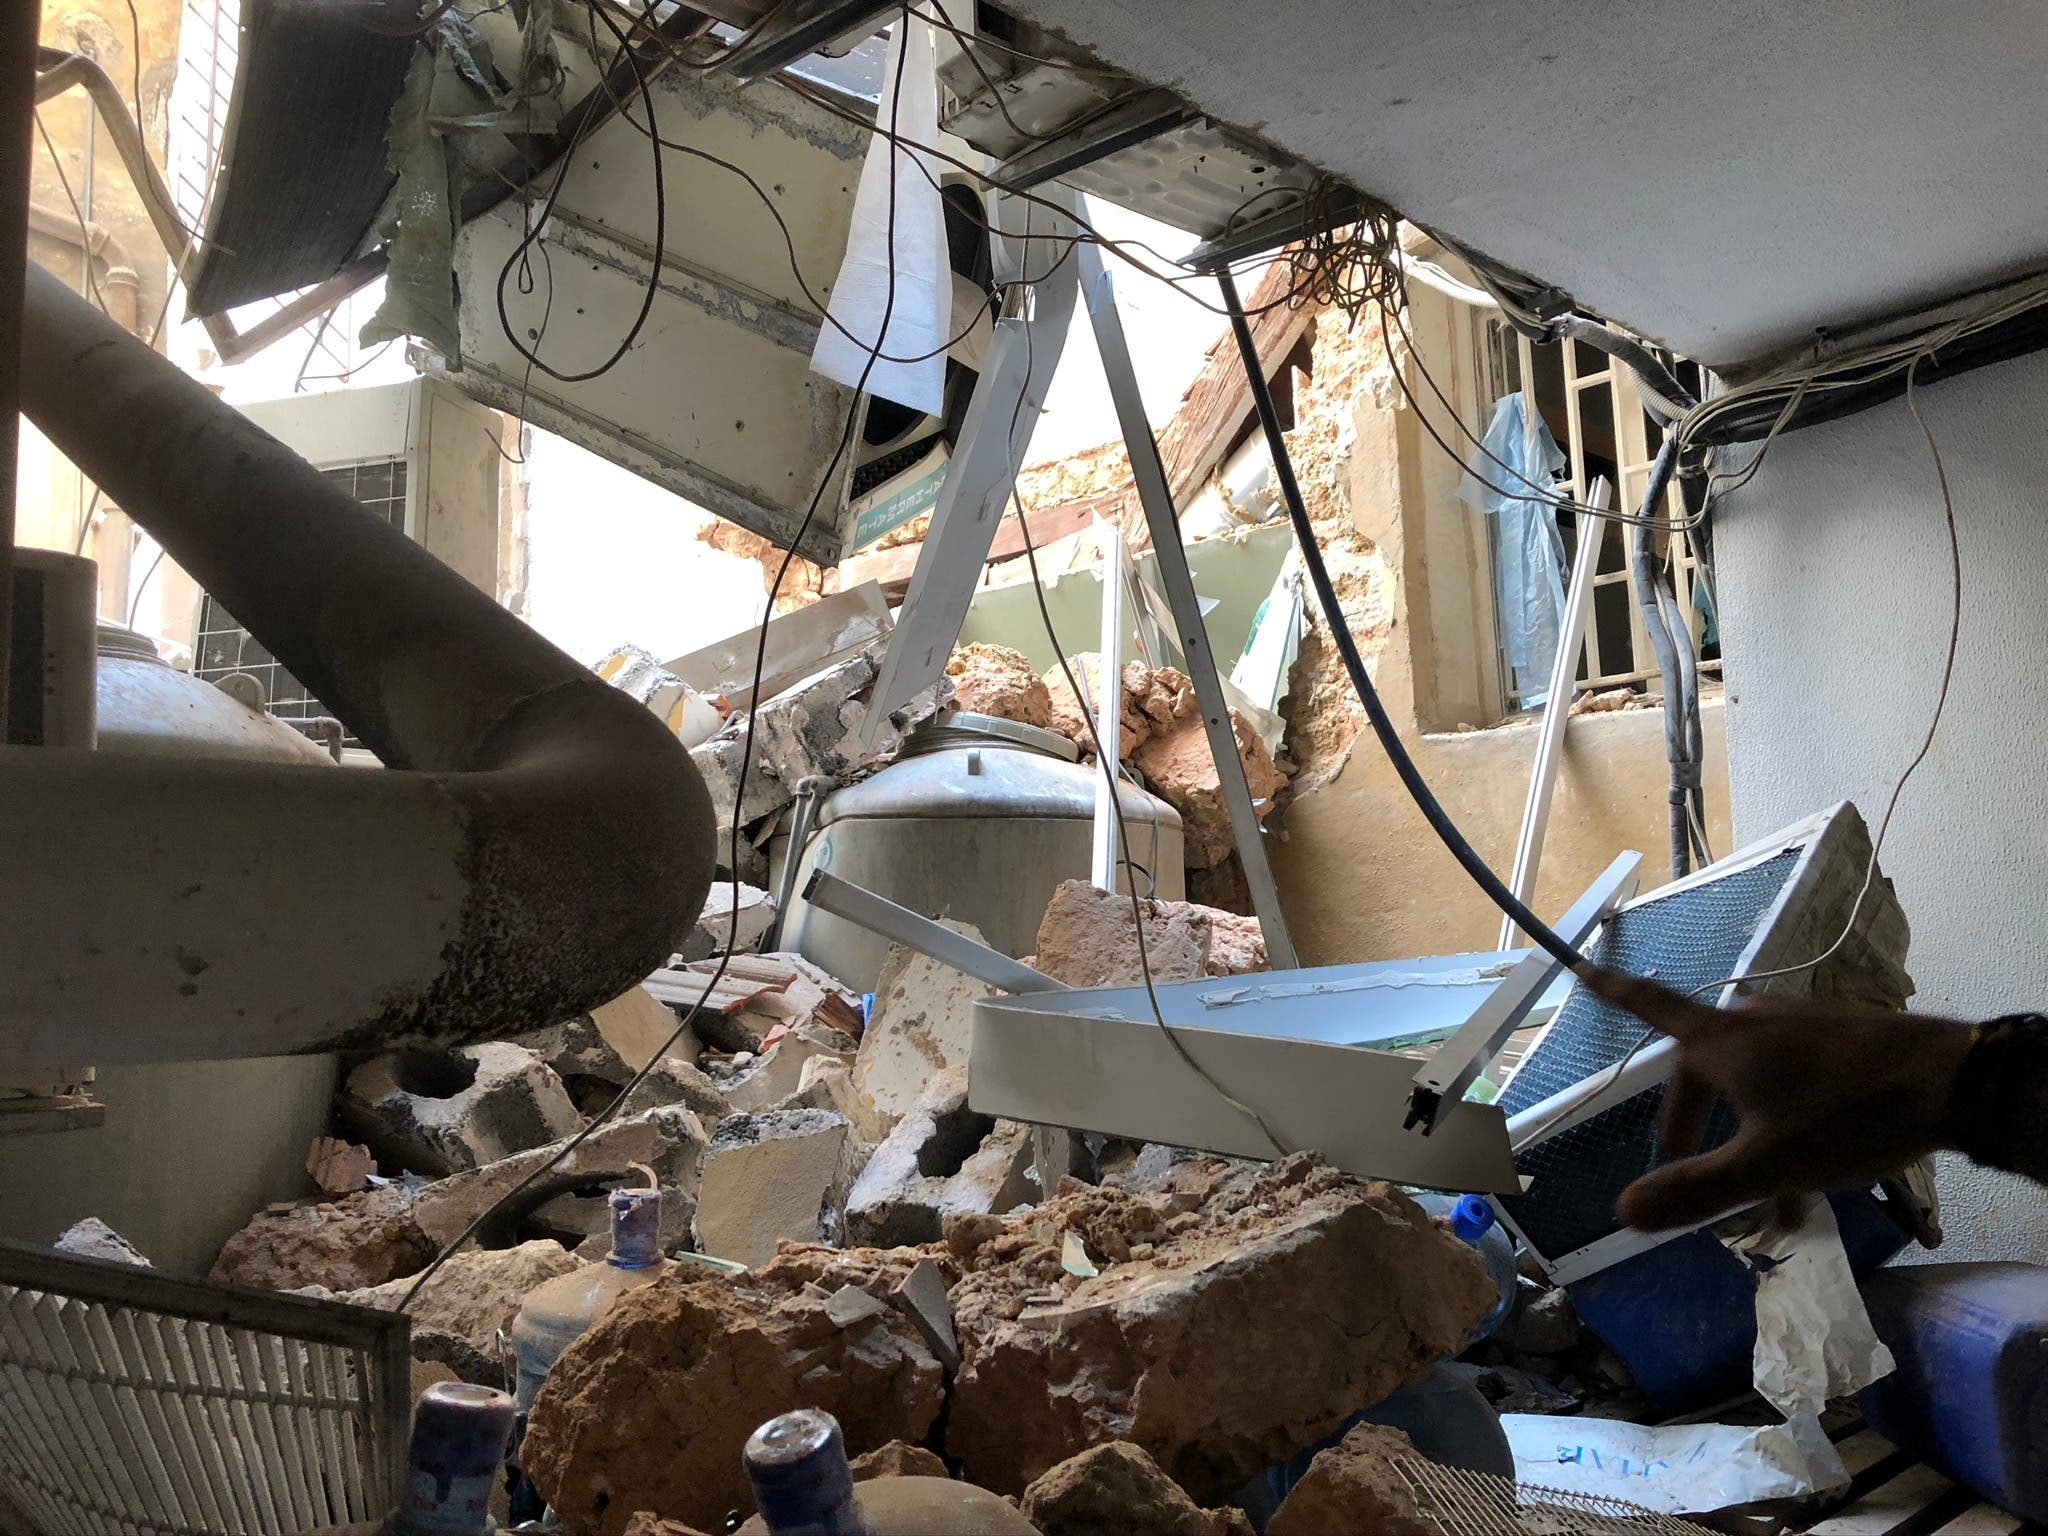 Nails & Spa, a trendy salon in Beirut, Lebanon, was heavily damaged in the August 4 explosion at the Port of Beirut. (Bassam Zaazaa)